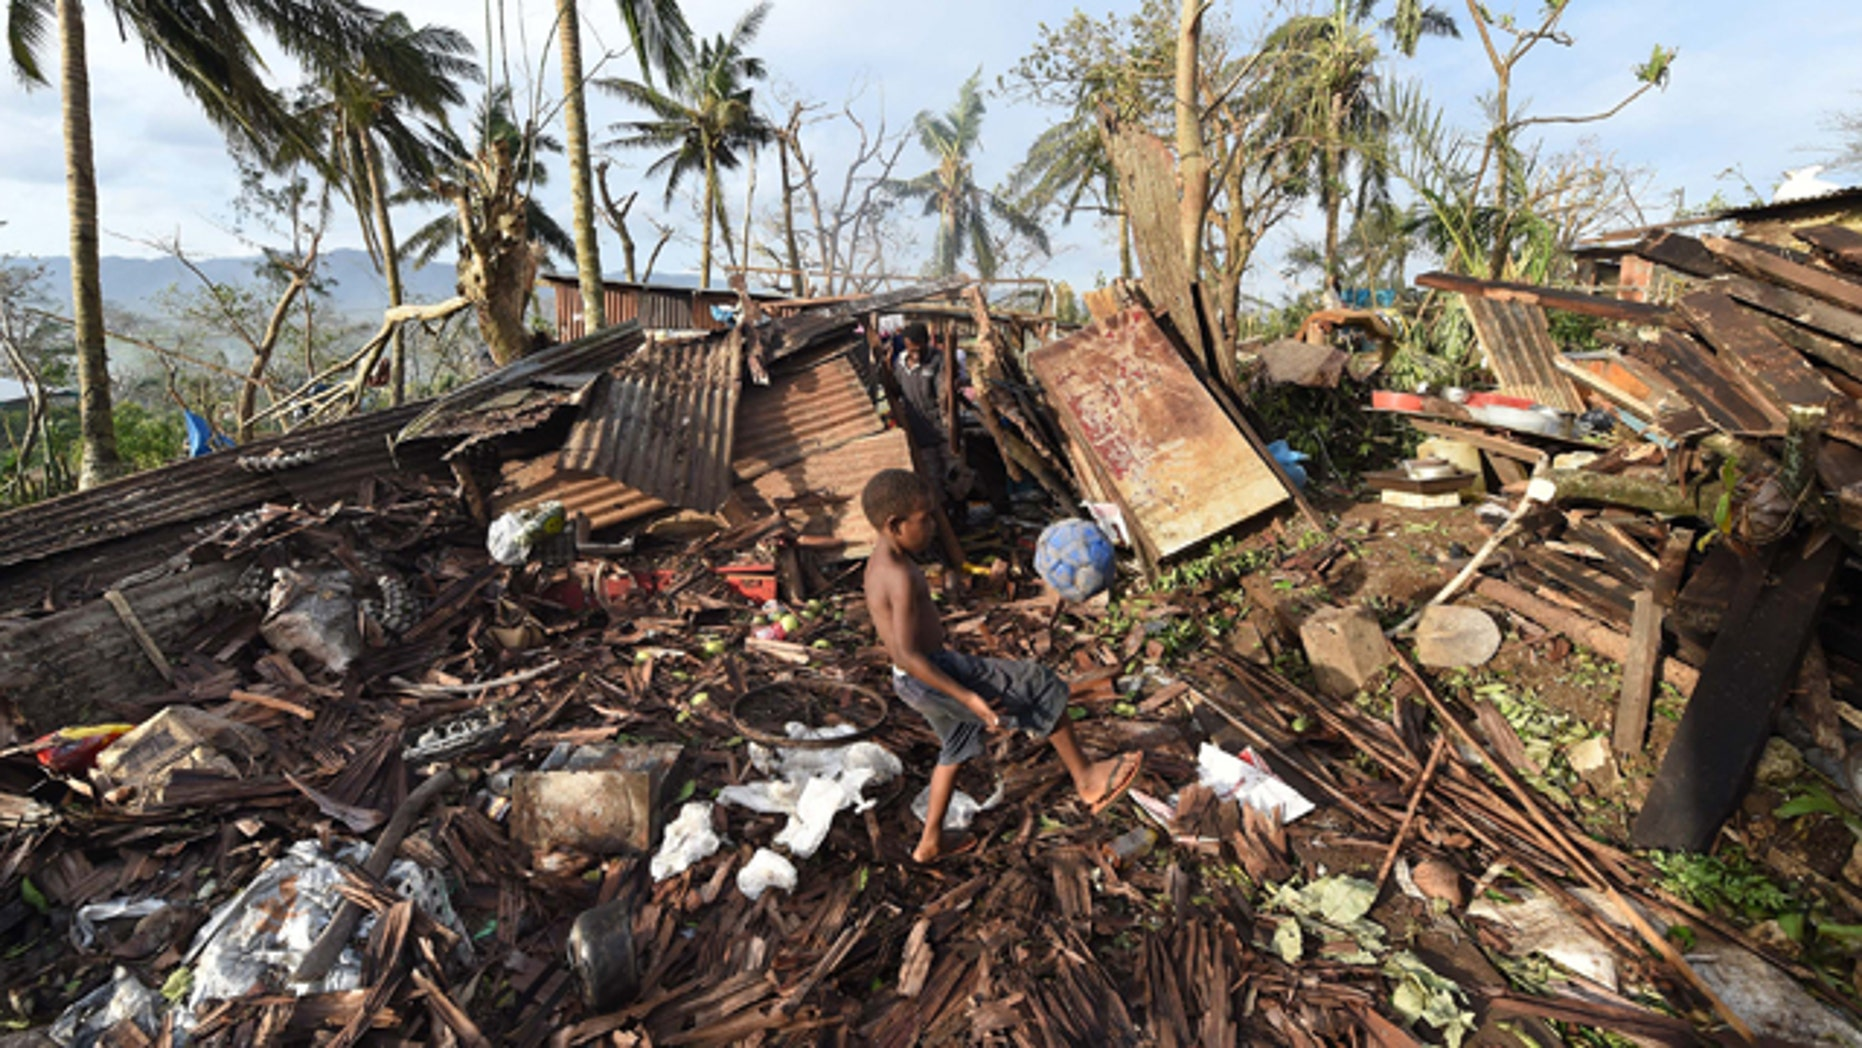 March 16, 2015: Samuel, only his first name given, kicks a ball through the ruins of their family home as his father, Phillip, at back, picks through the debris in Port Vila, Vanuatu in the aftermath of Cyclone Pam. (AP)